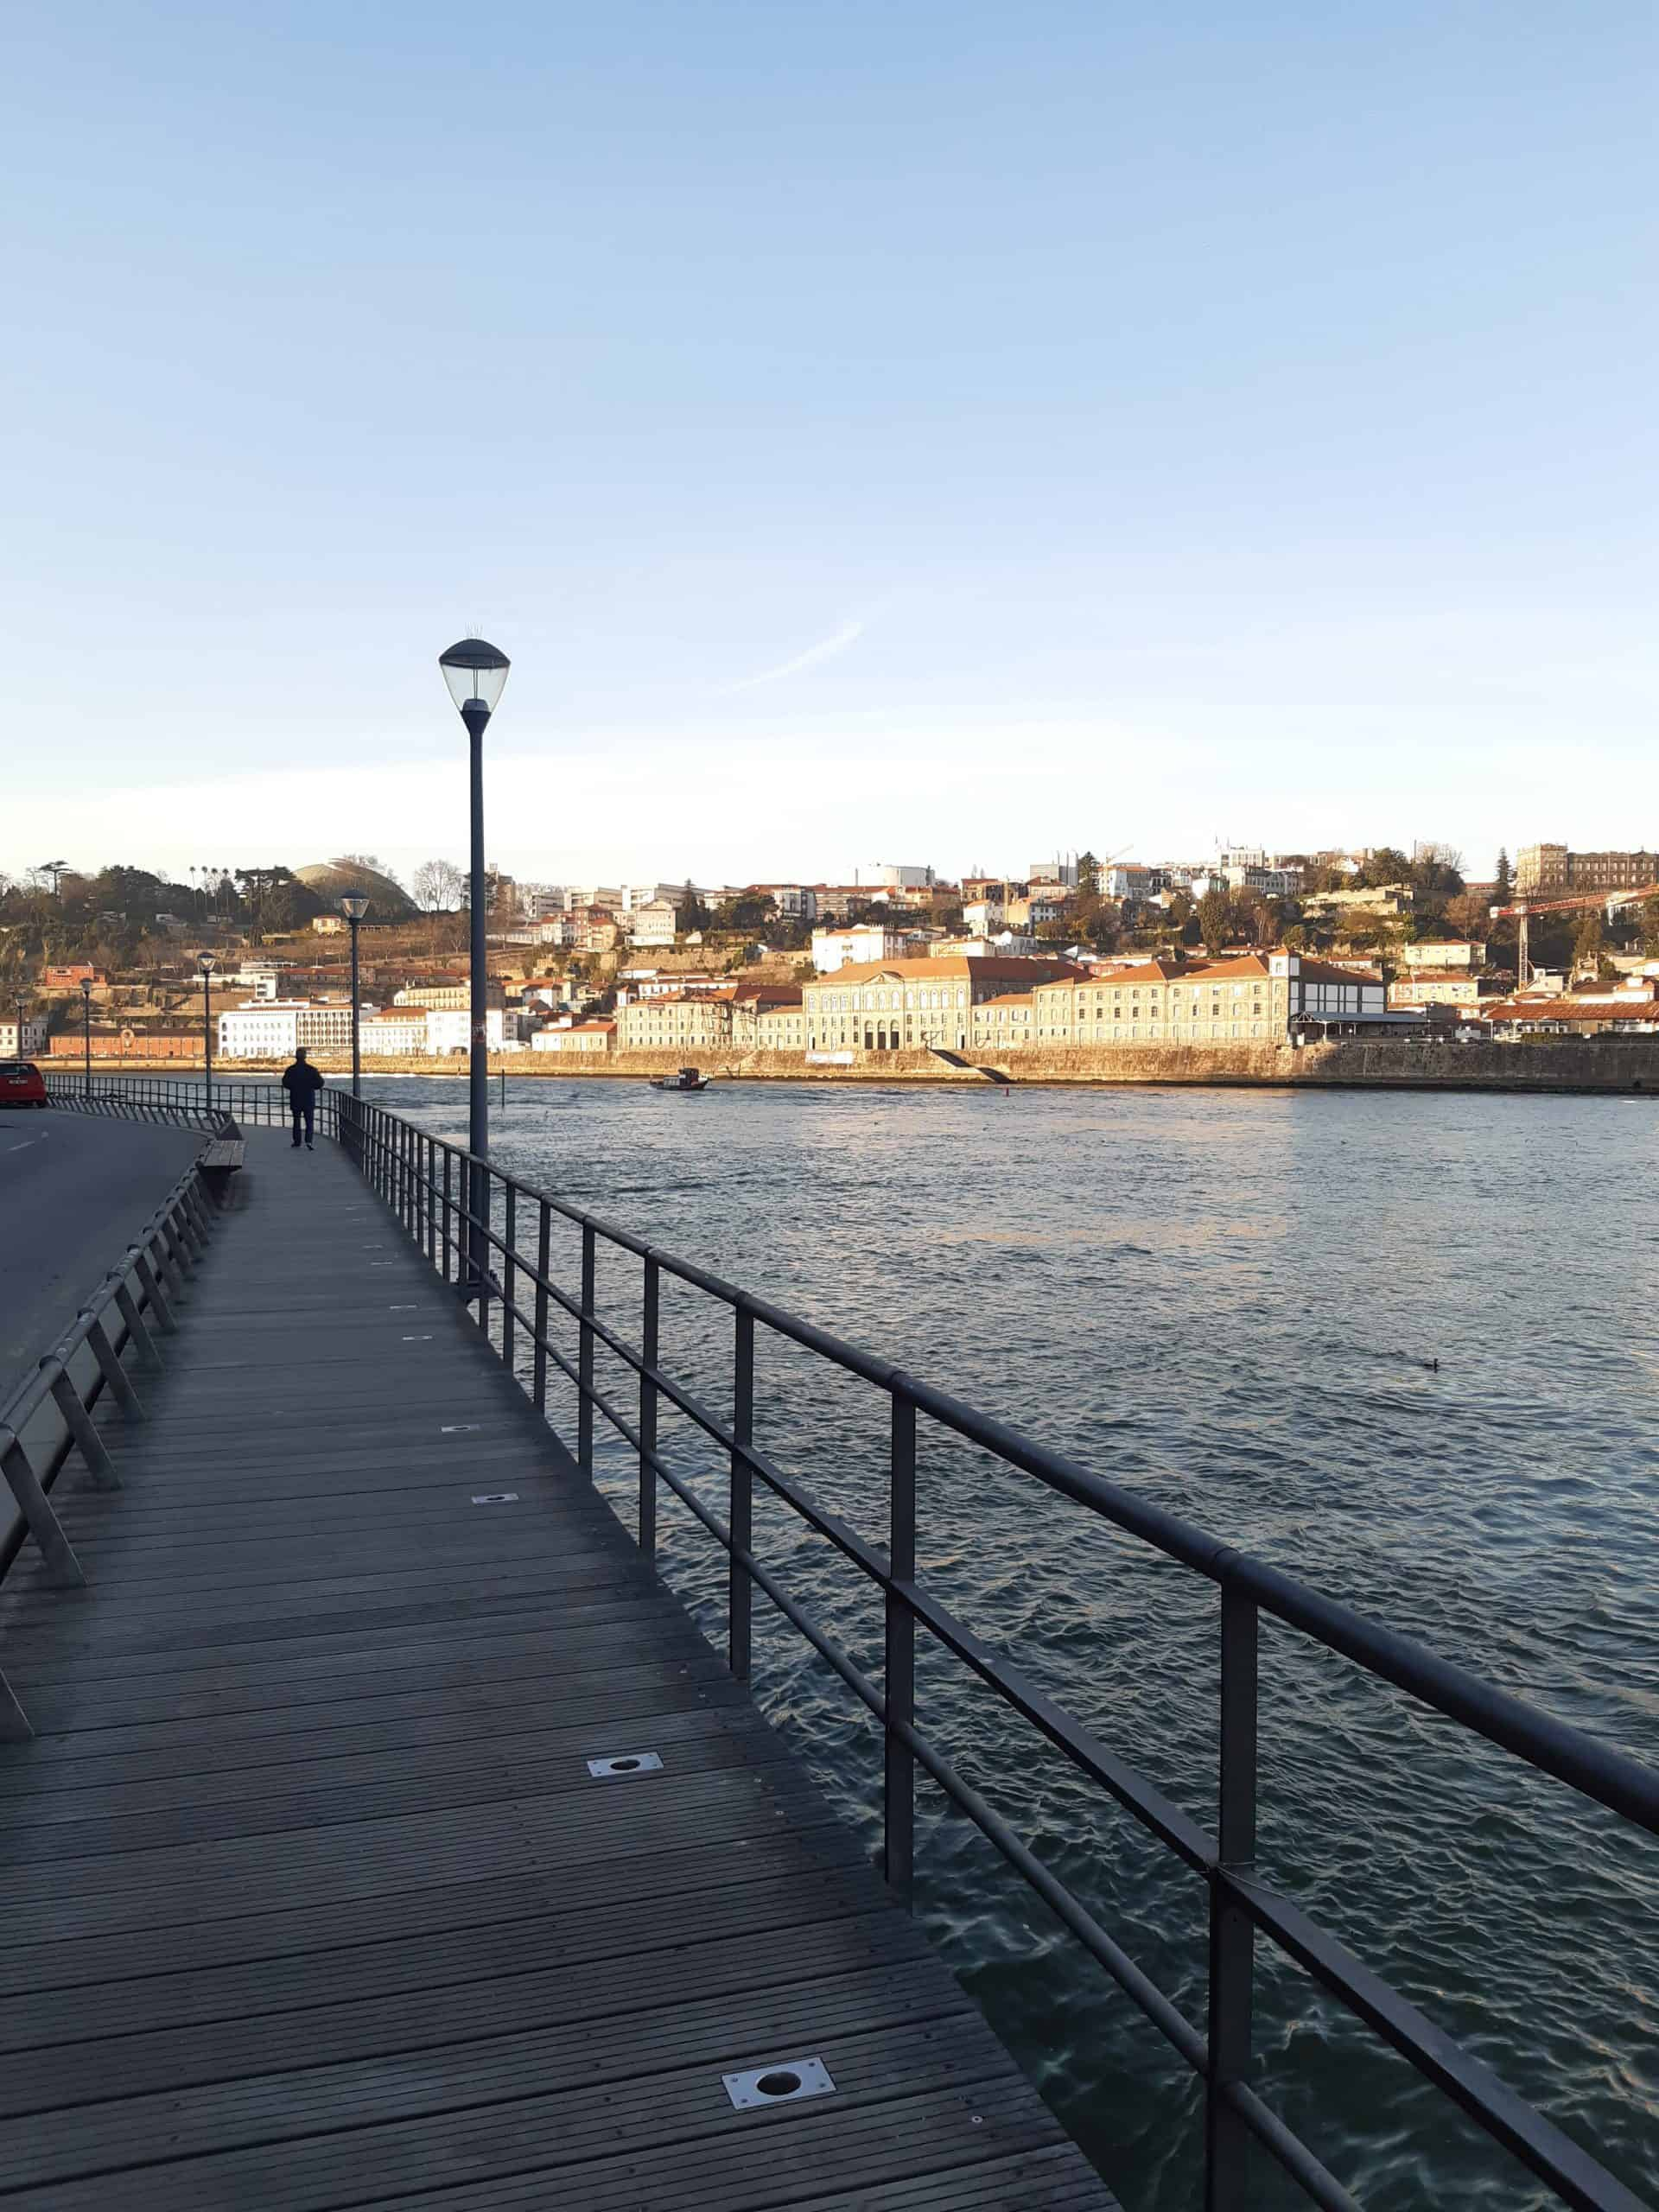 Things to do in Porto: Walk along the riverside promenades of Porto and Gaia